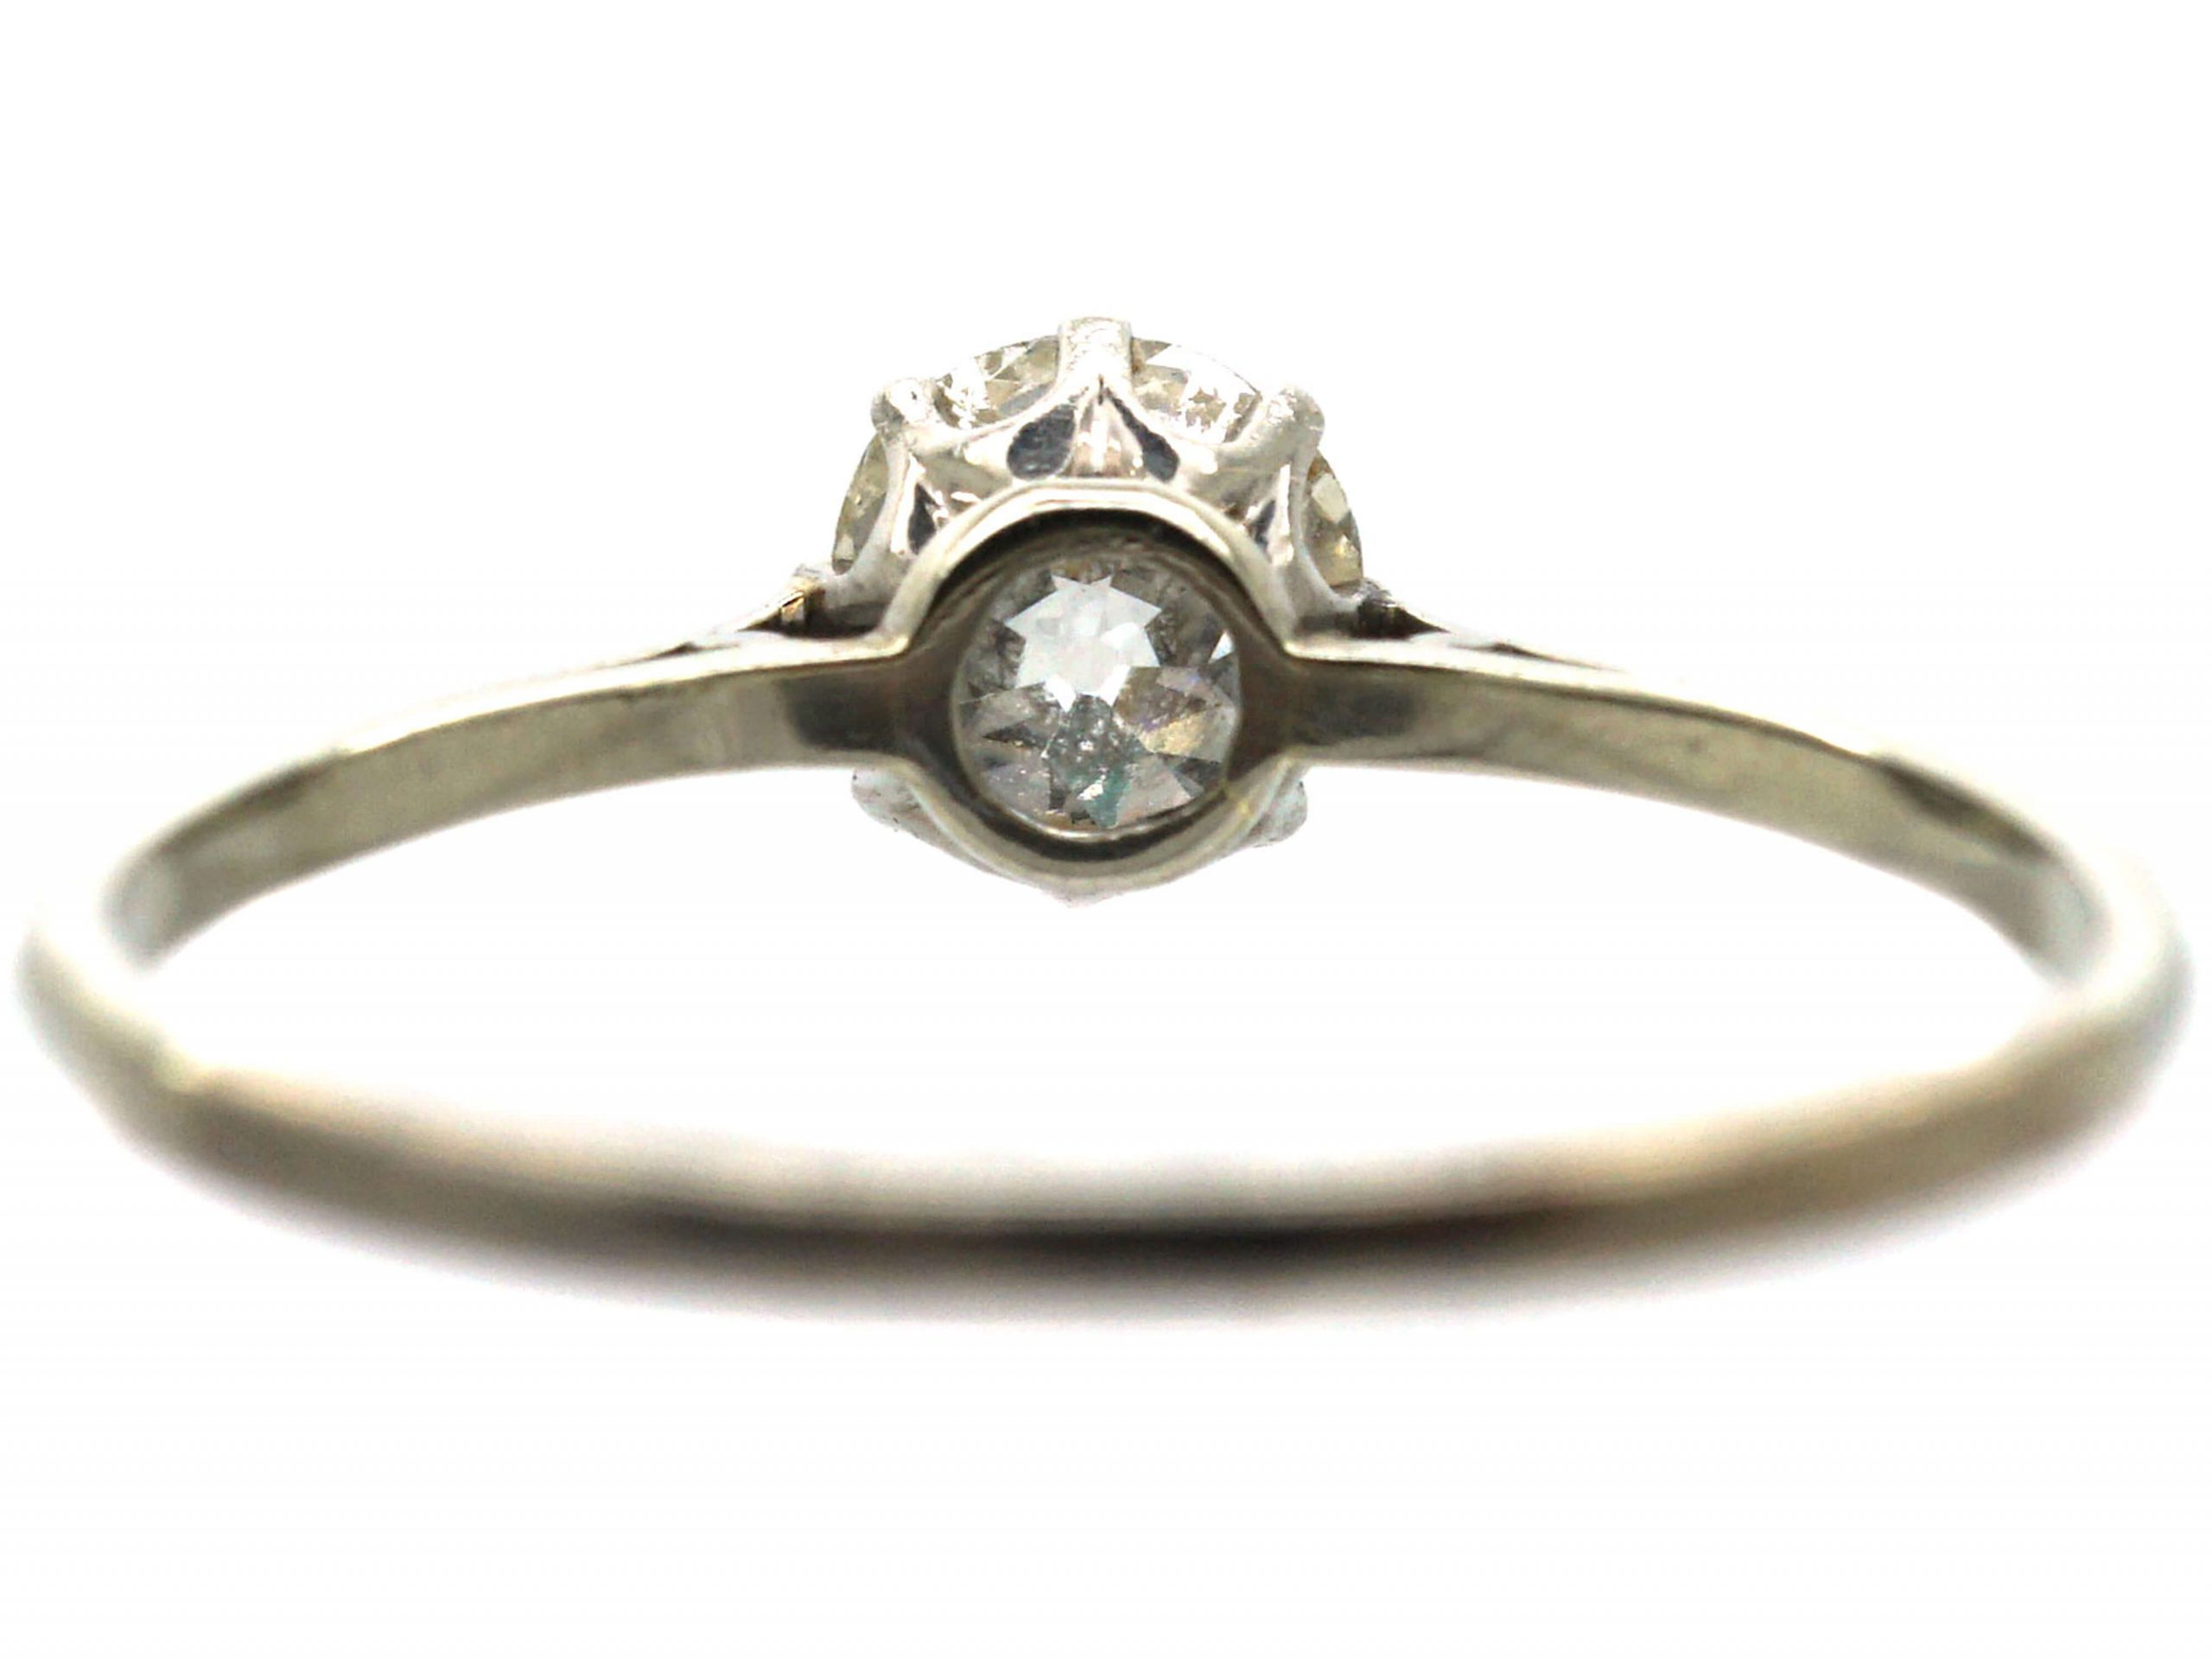 1920's 18ct White Gold & Diamond Solitaire Ring